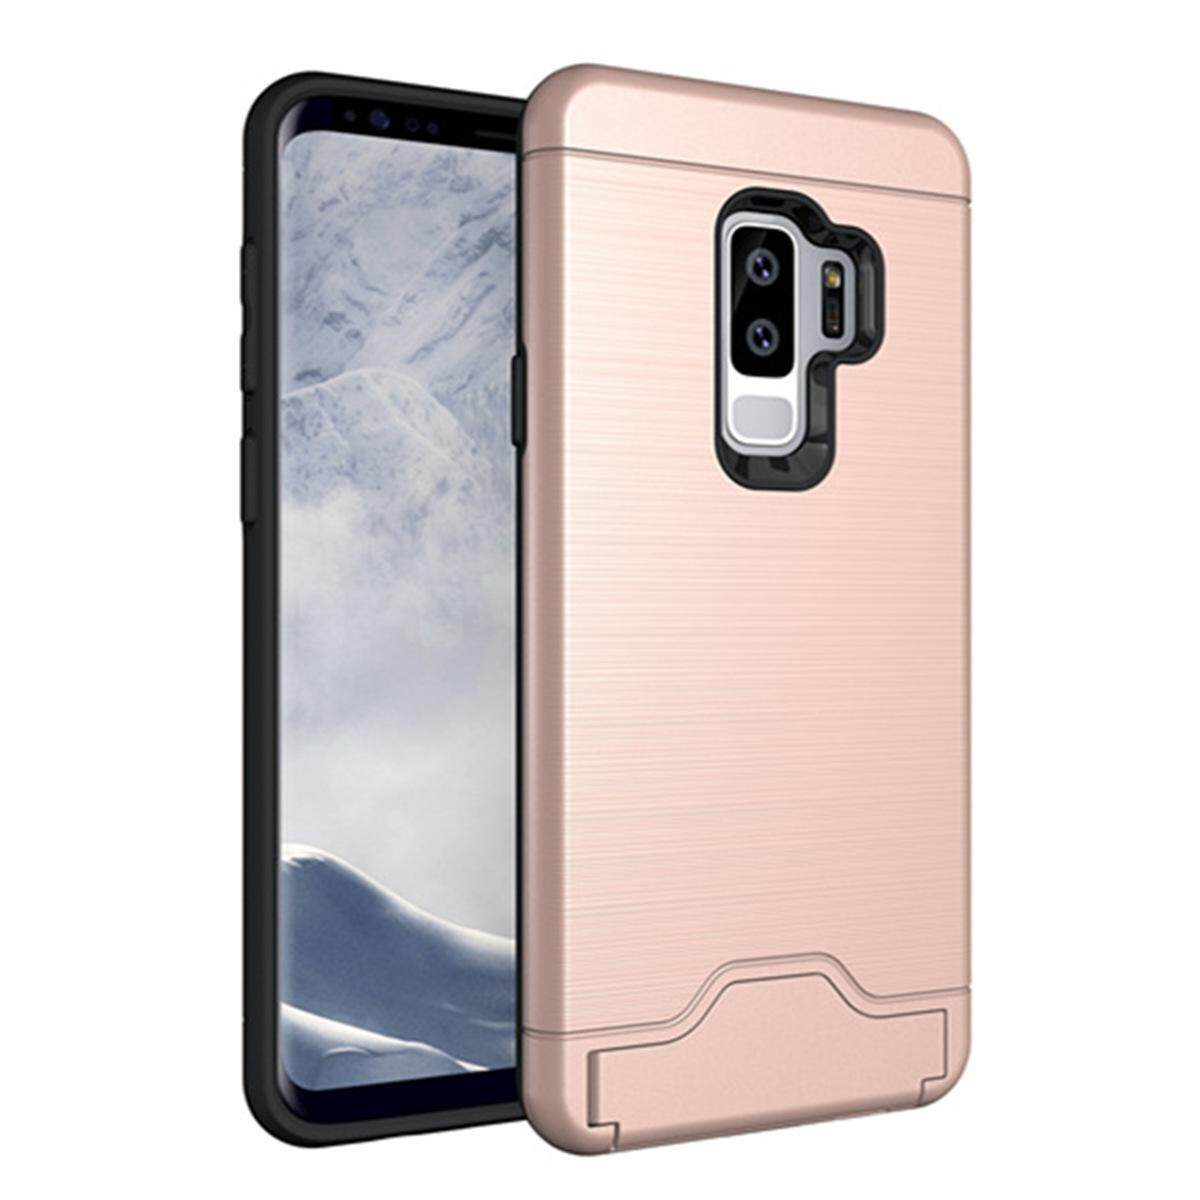 Hình ảnh for Samsung Galaxy S9 Plus & S9+ Case [Hidden Card Slot] Hard PC + TPU Hybrid Back Armor Case Cover, with Cryptic Card Storage Slot, Skidproof, Minimalist - intl